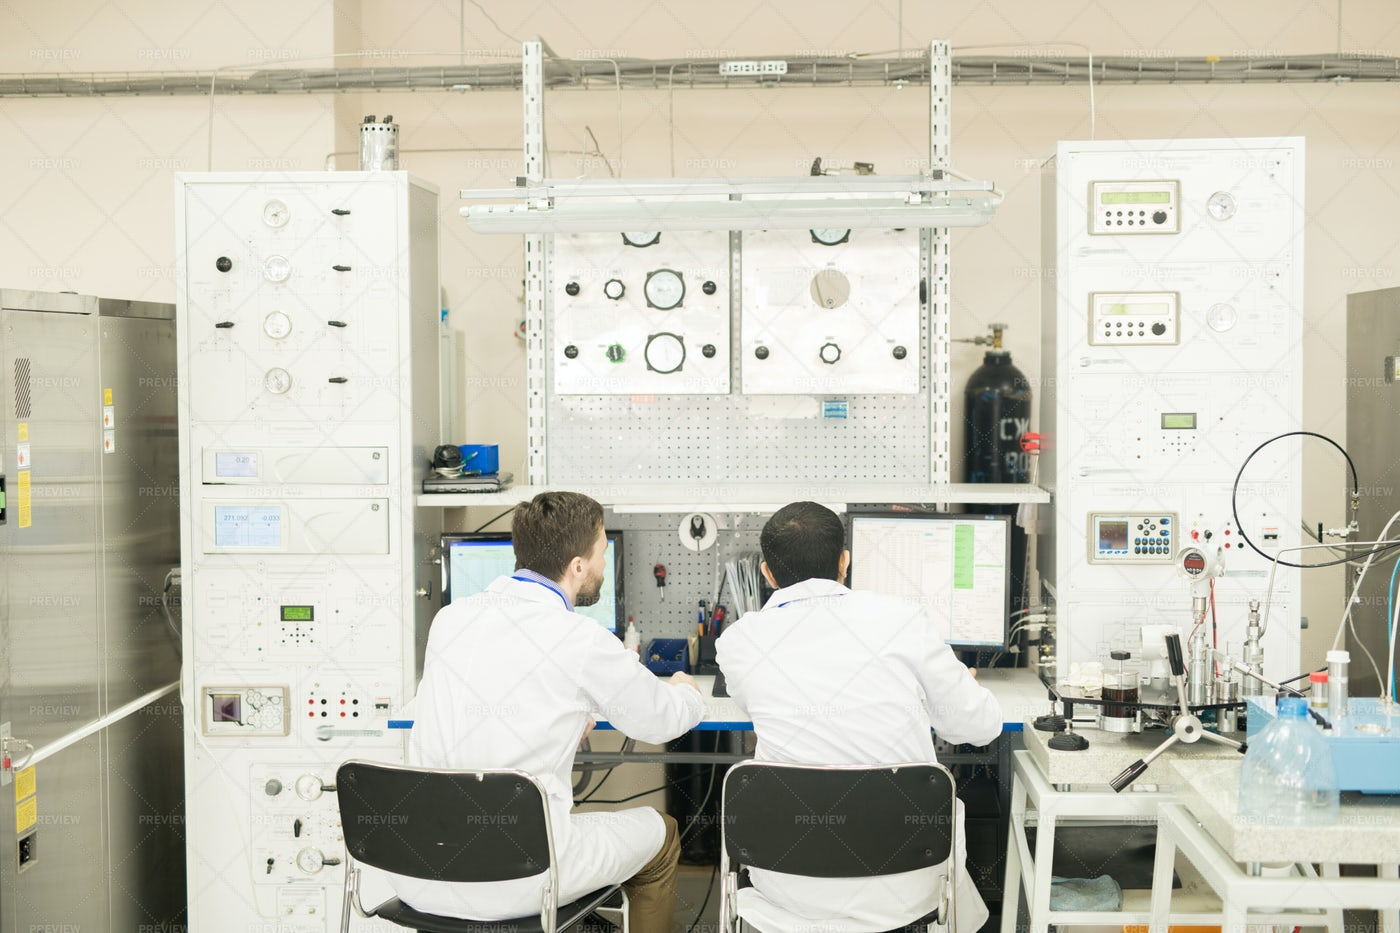 Engineers Working With Computer...: Stock Photos